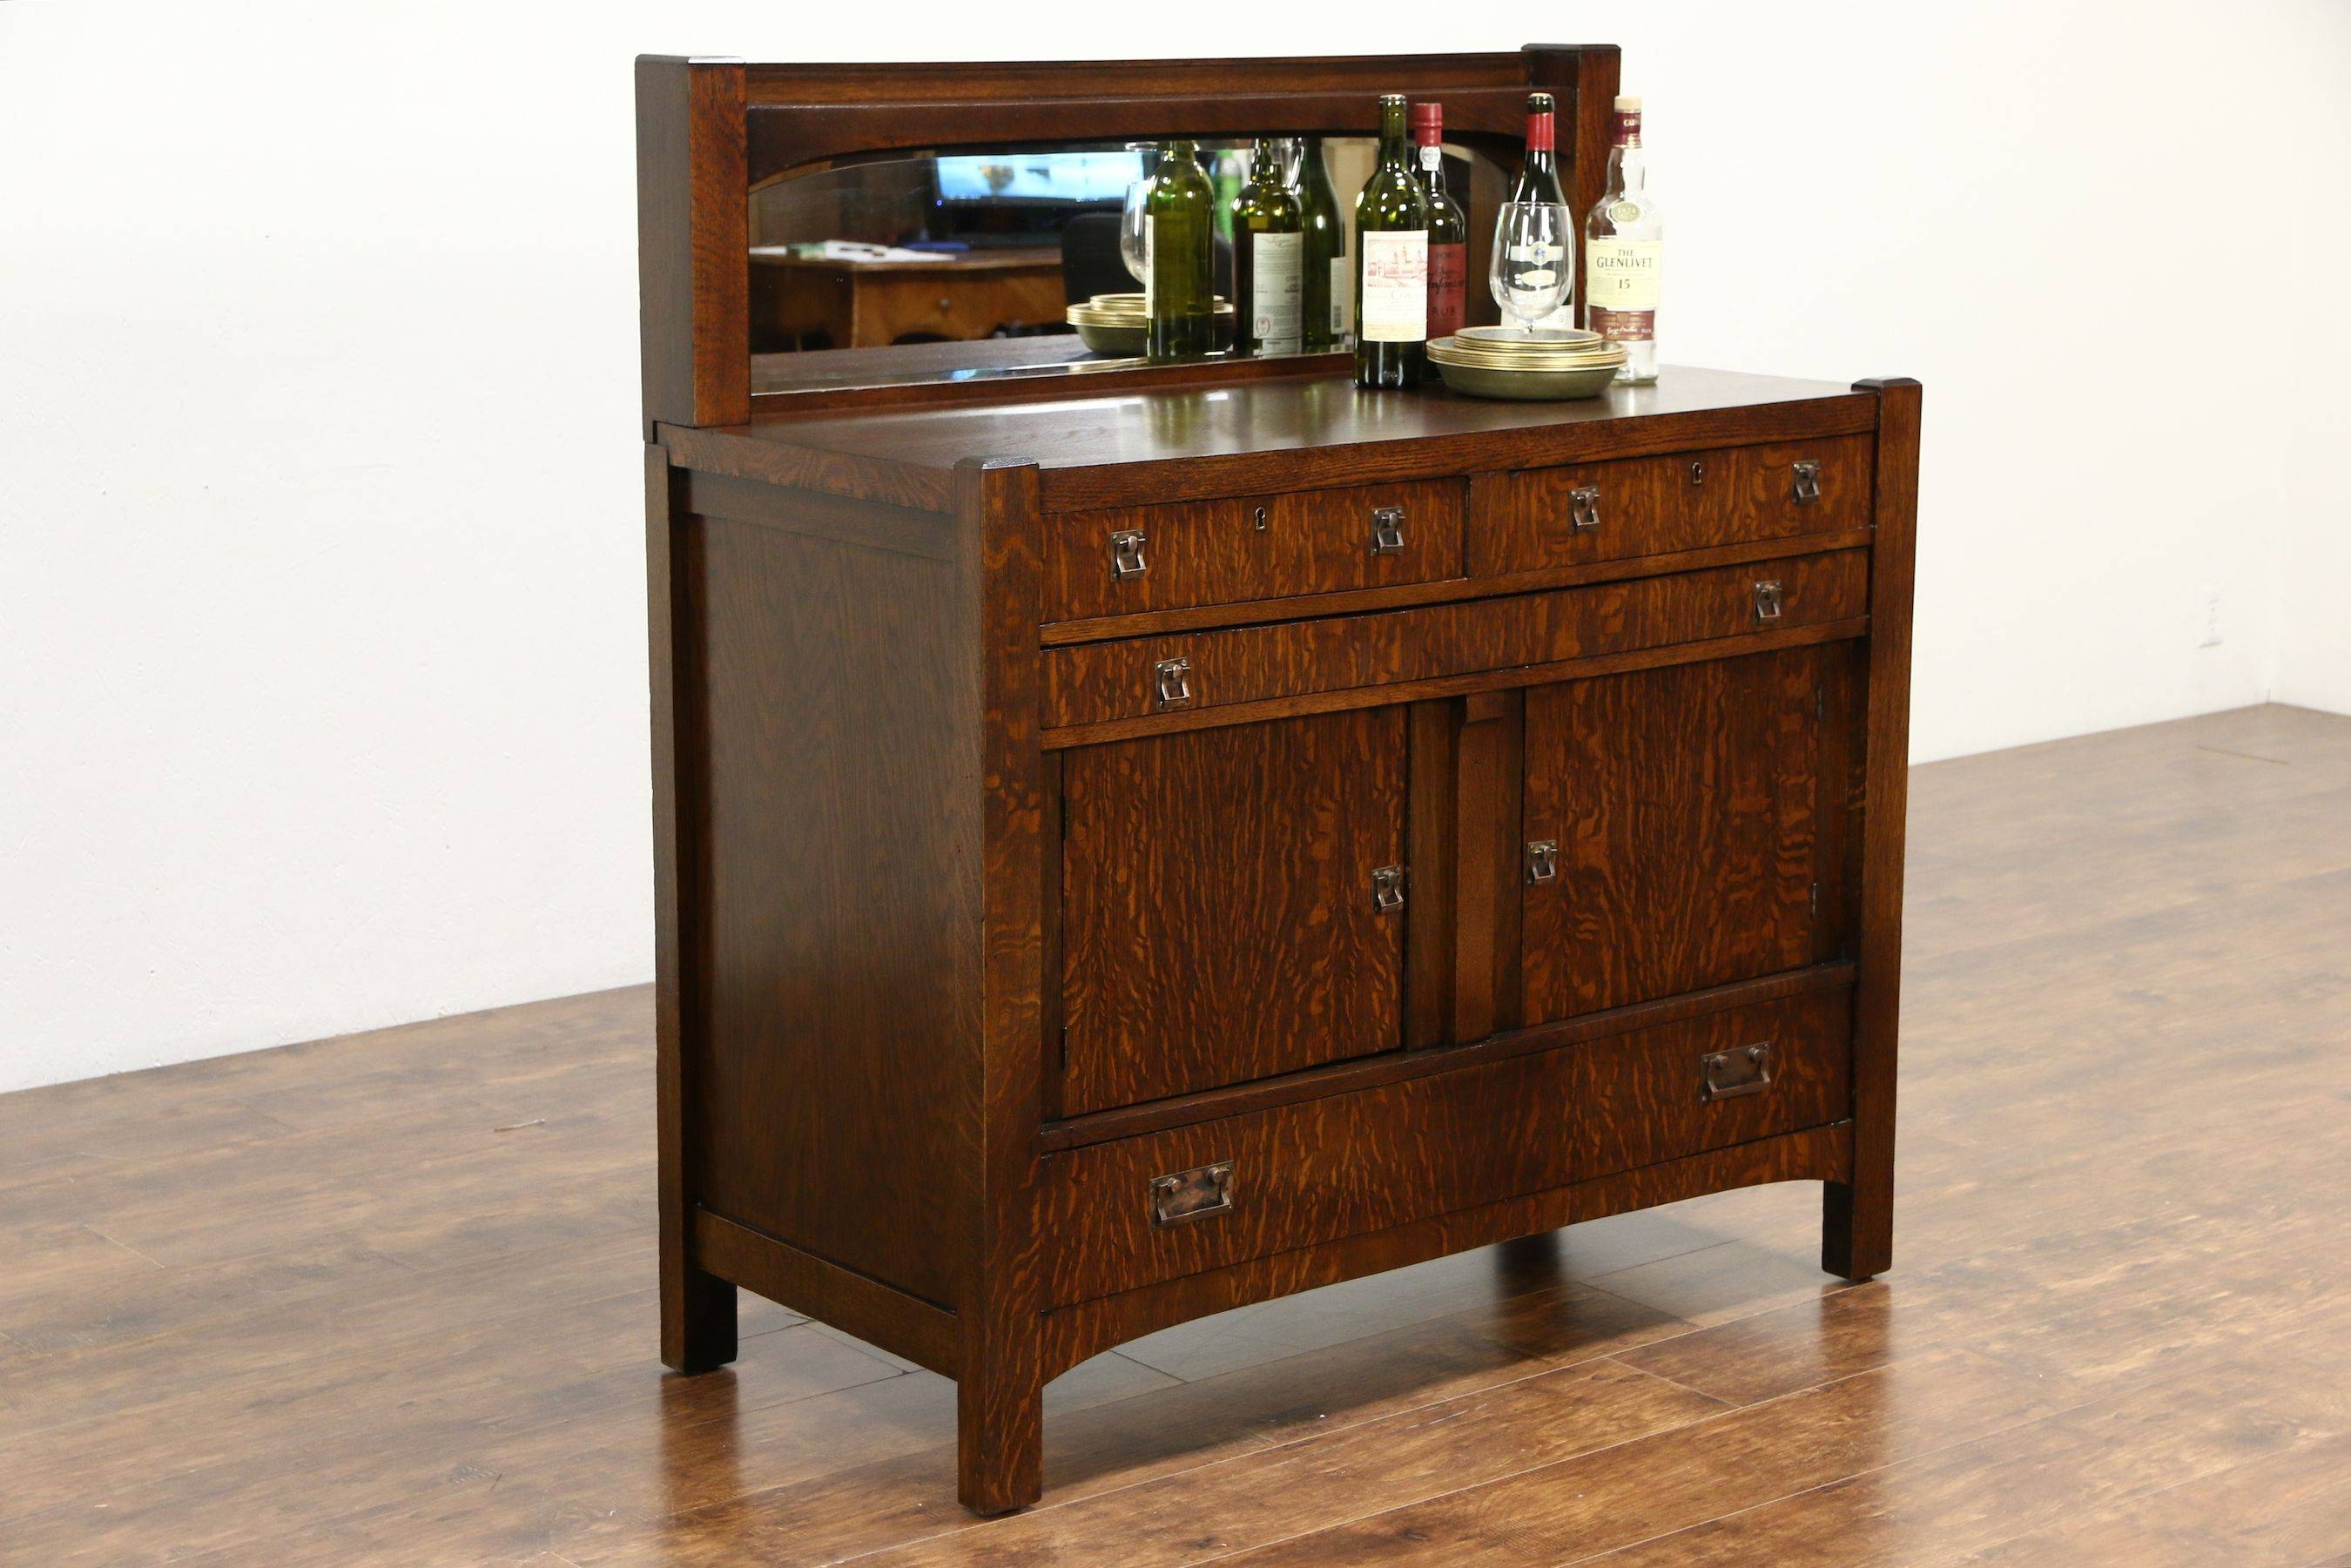 Sold - Arts & Crafts Mission Oak Antique 1905 Craftsman Sideboard intended for Mission Sideboards (Image 13 of 15)